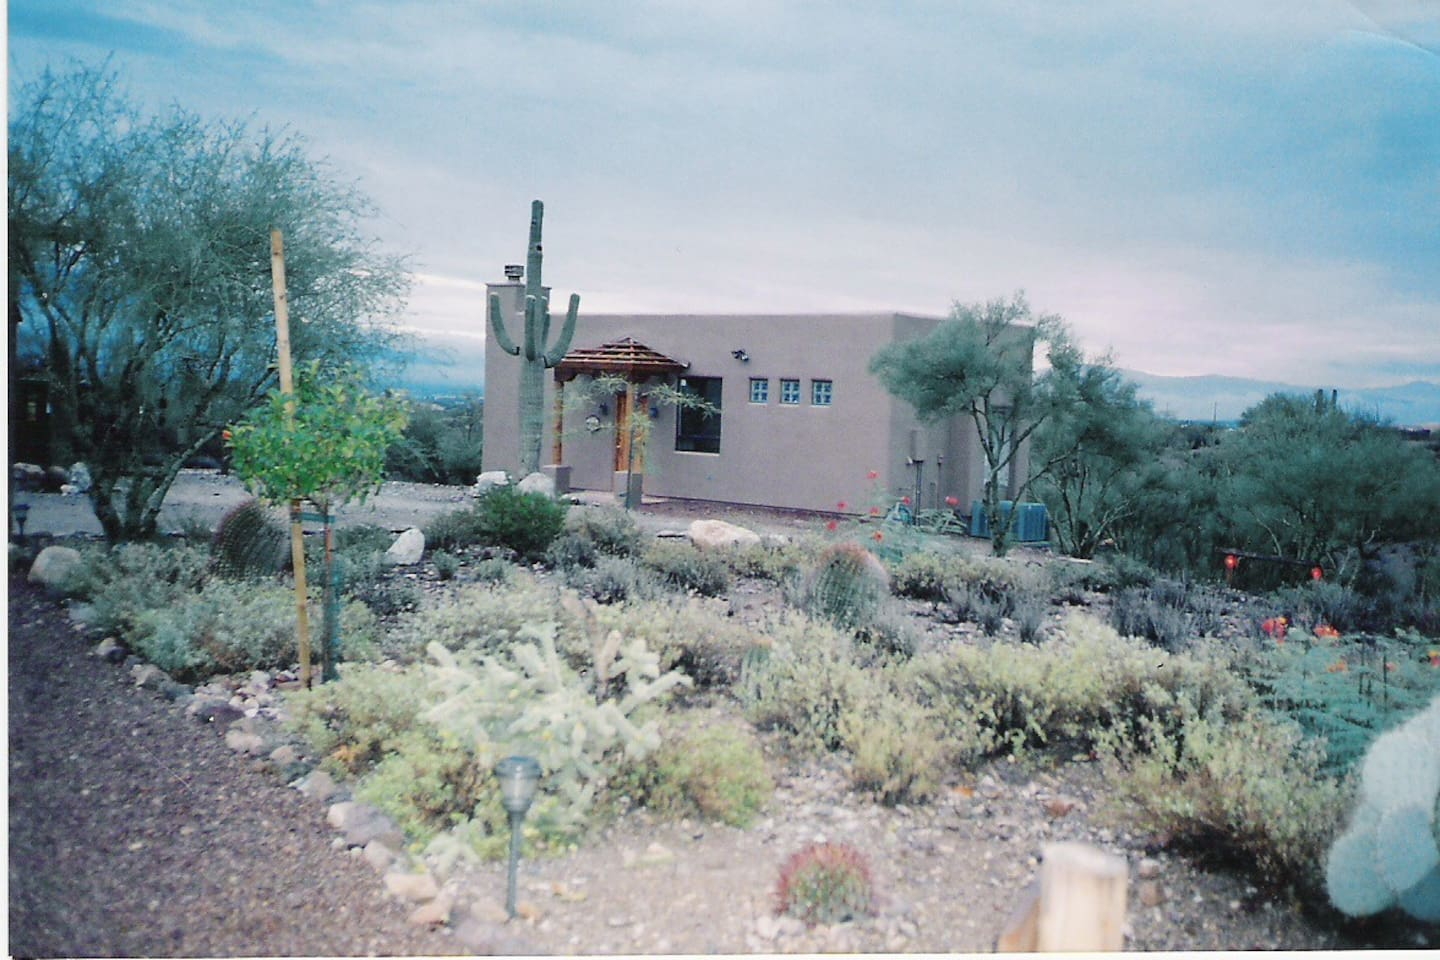 OUTSIDE VIEW OF THE HACIENDA HIDEOUT